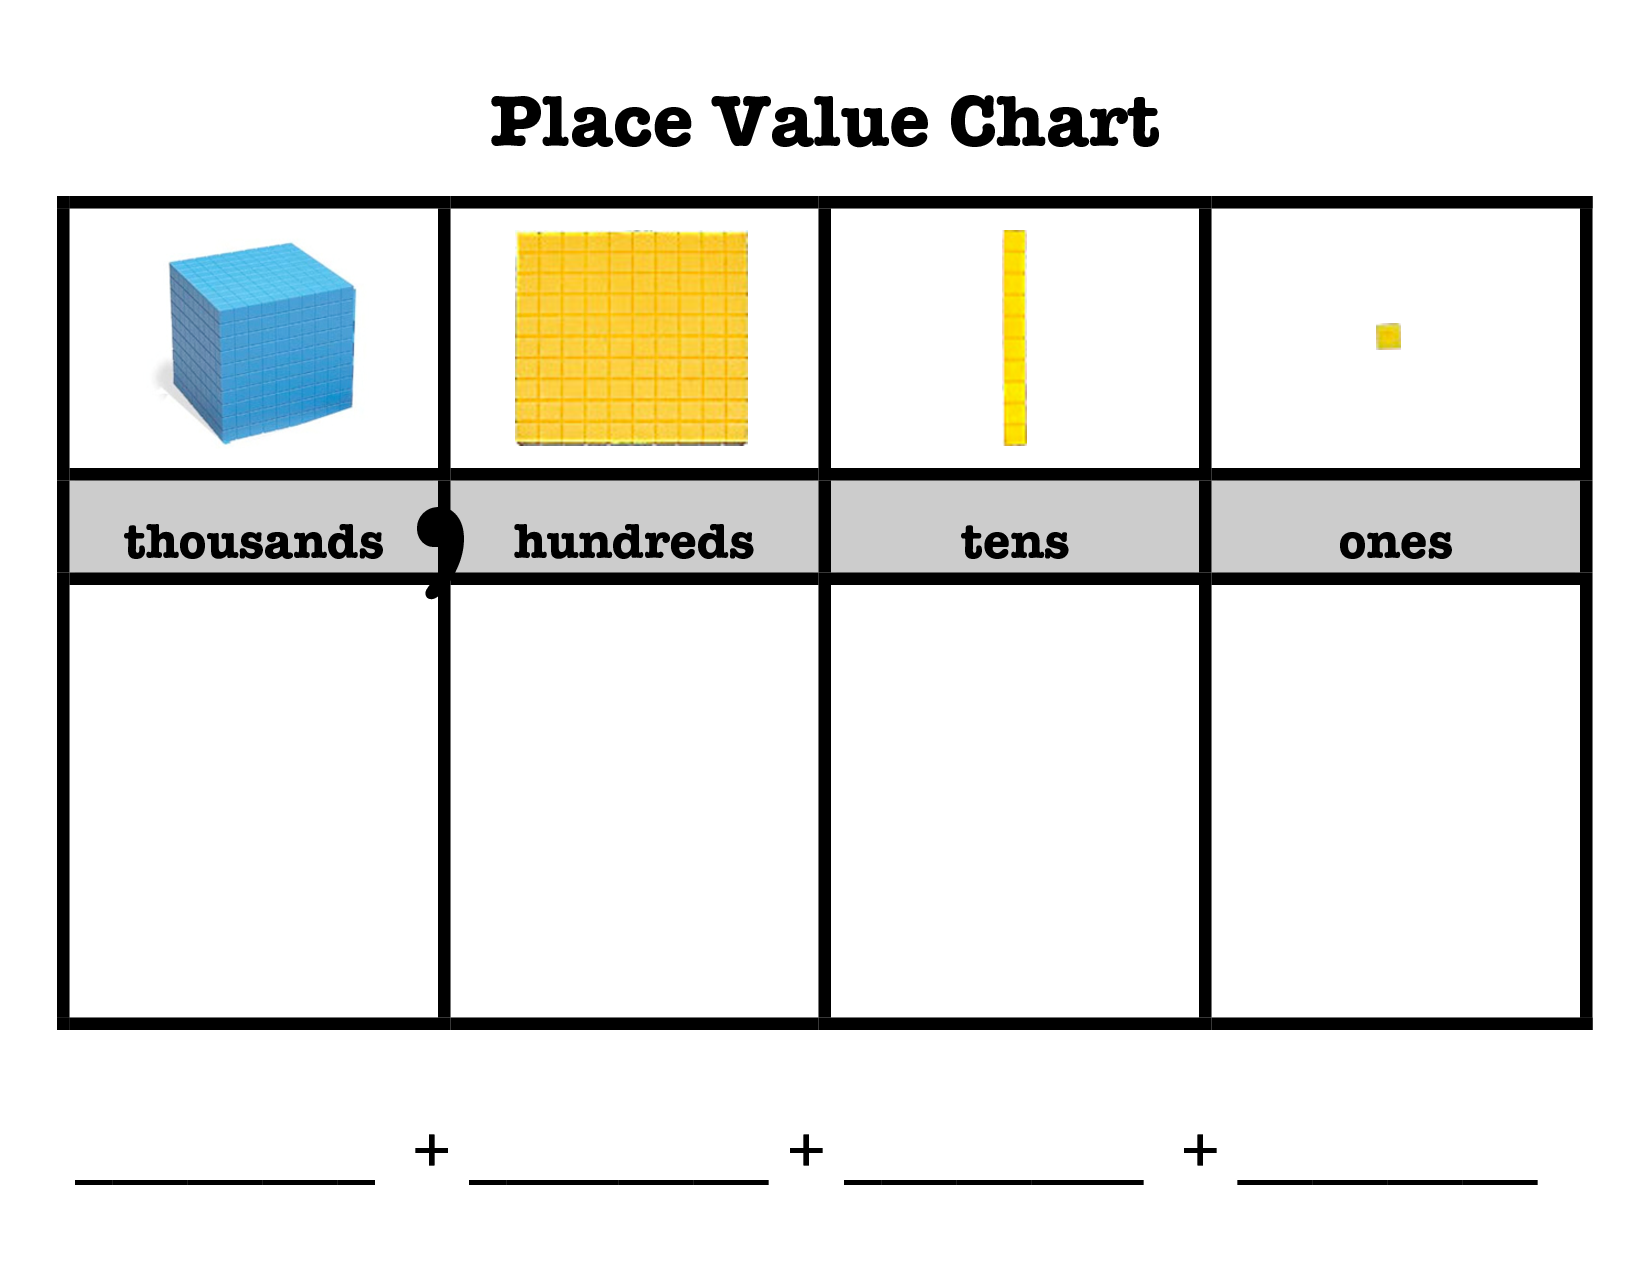 Thousands Place Value Chart … | First Time Teacher ...